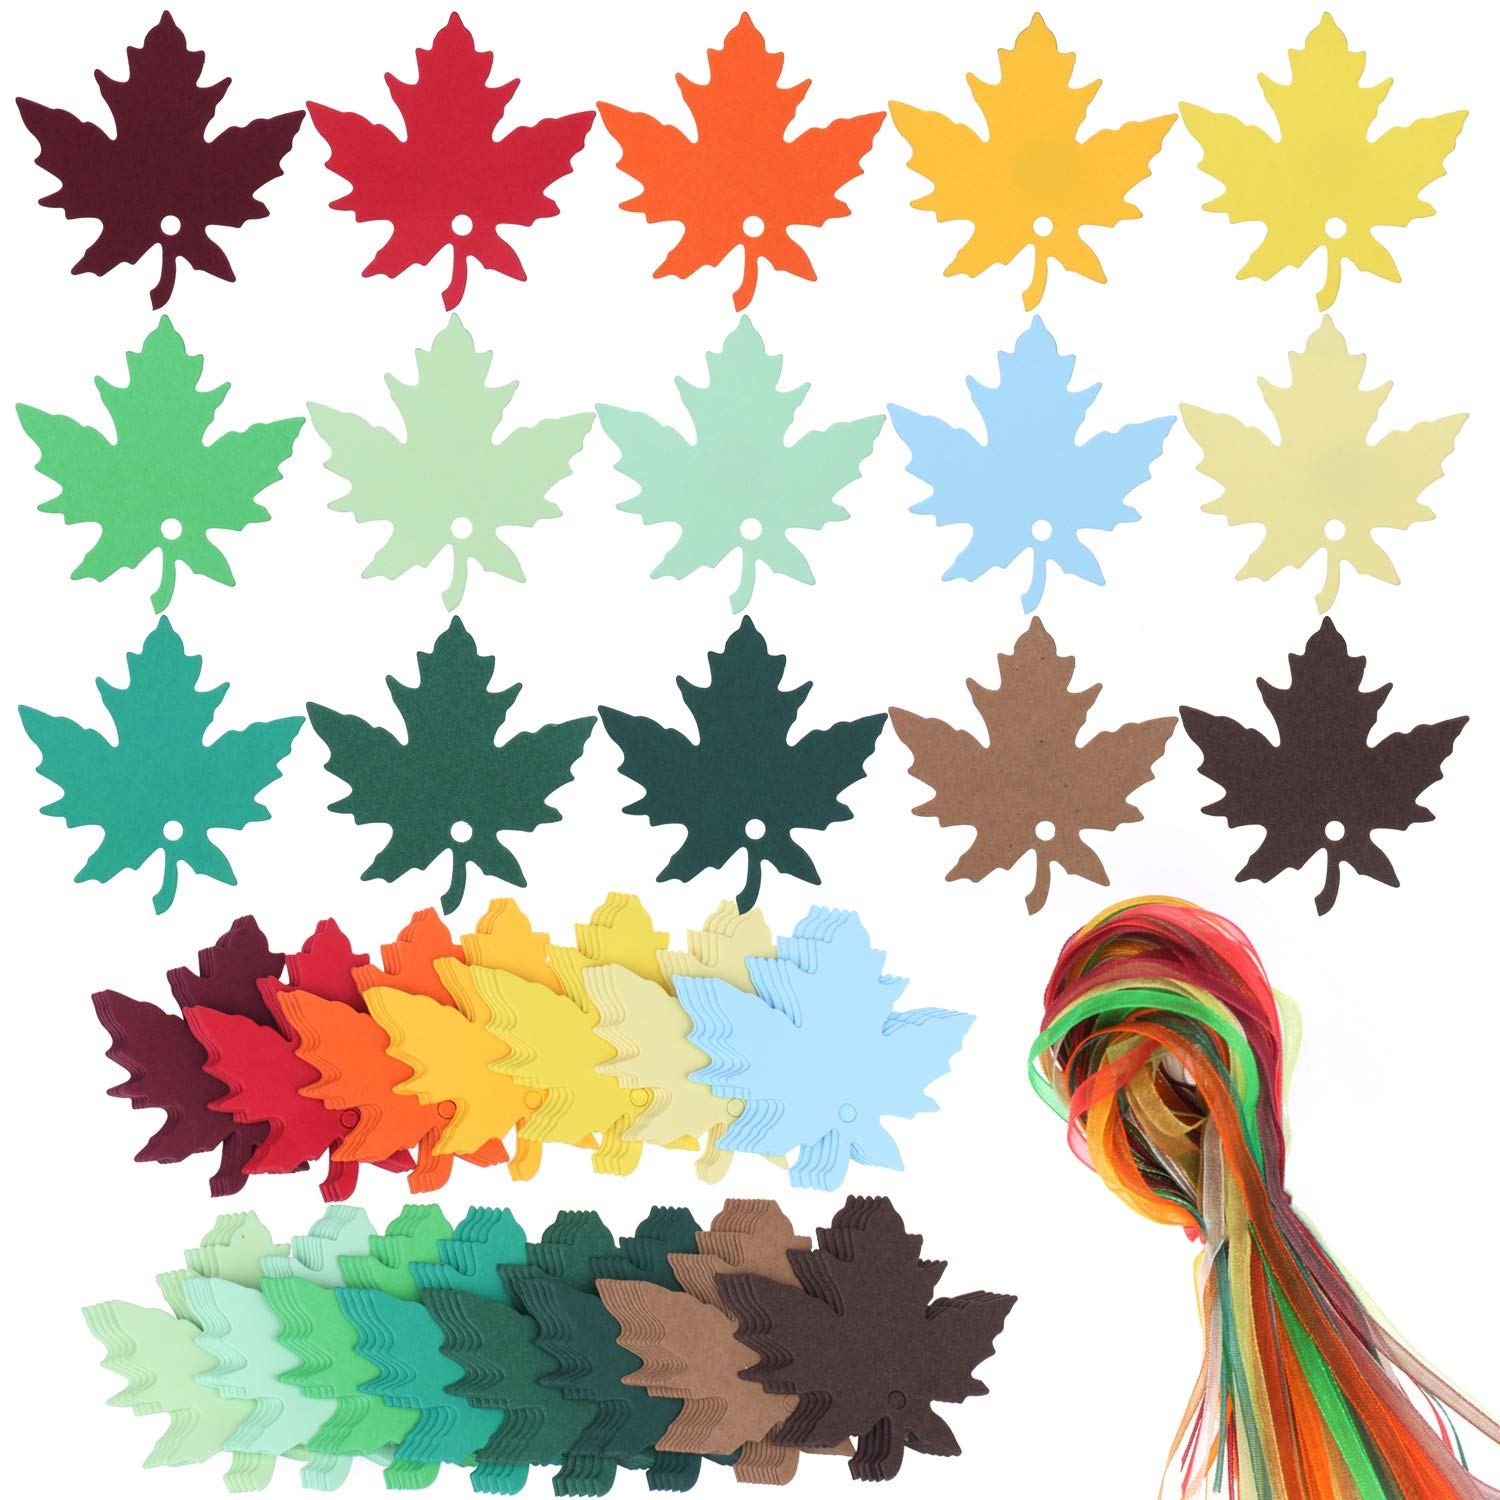 SUBANG 150 Pcs 15 Colors Maple Leaves Gift Tags Sign with Strings Tags Escort Cards Wishing Tree Tags Name Place Cards Hanging Sign Tags Leaves Paper Cutouts with Holes for Fall Wedding Party Festival SOTOGO